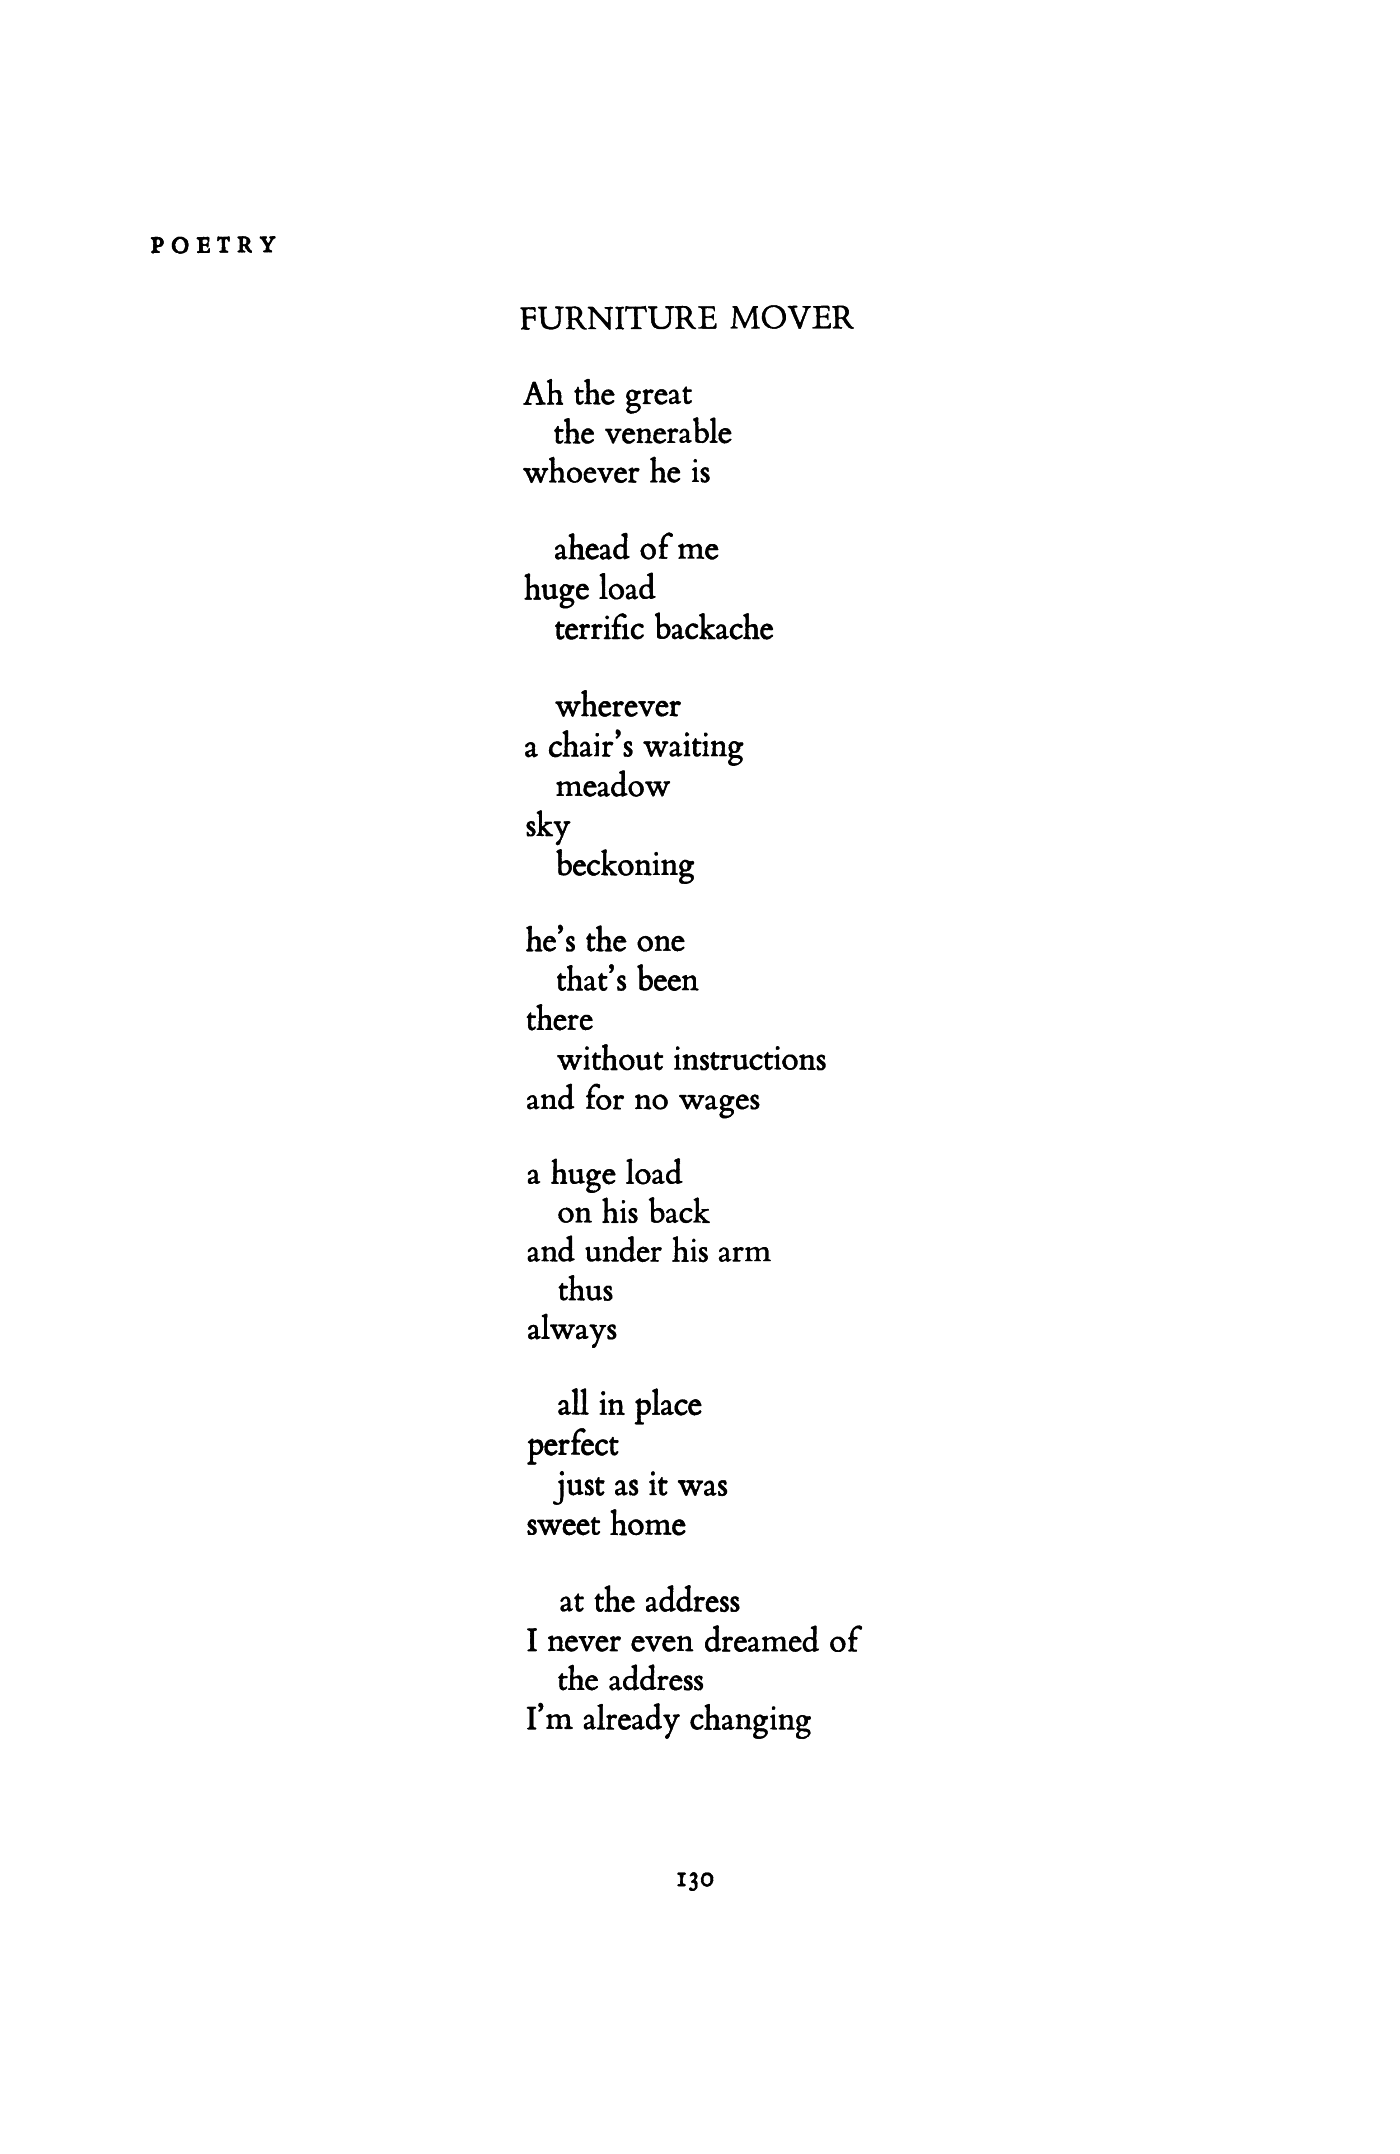 Furniture Mover By Charles Simic Poetry Magazine